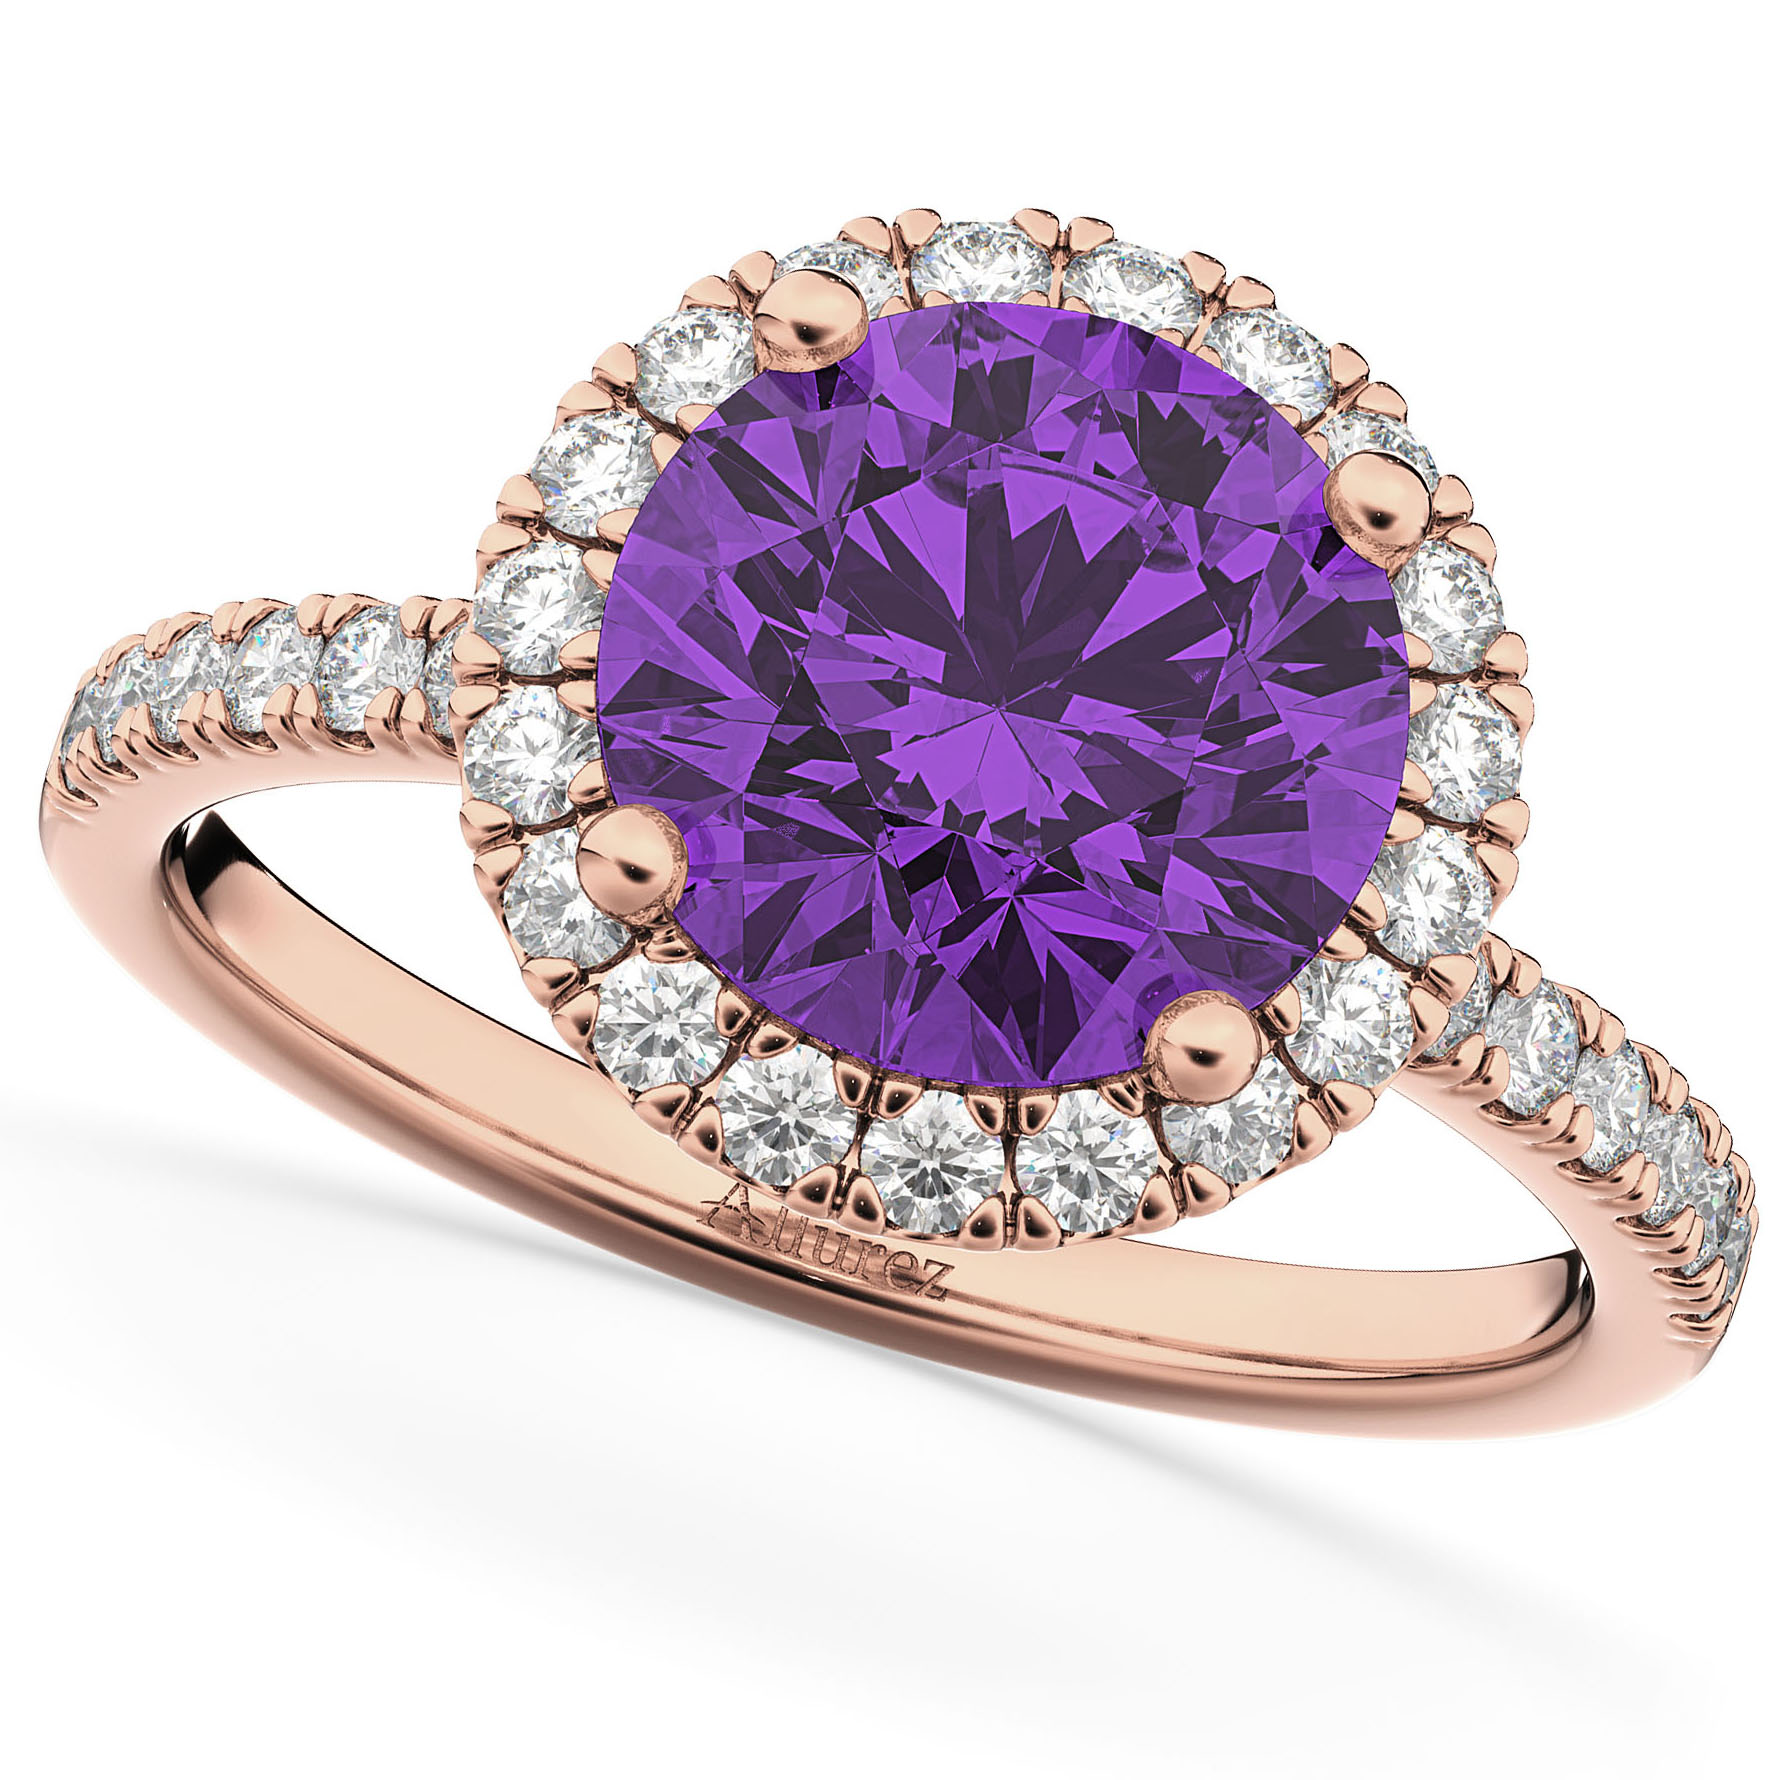 Halo Amethyst & Diamond Engagement Ring 14K Rose Gold 2.30ct